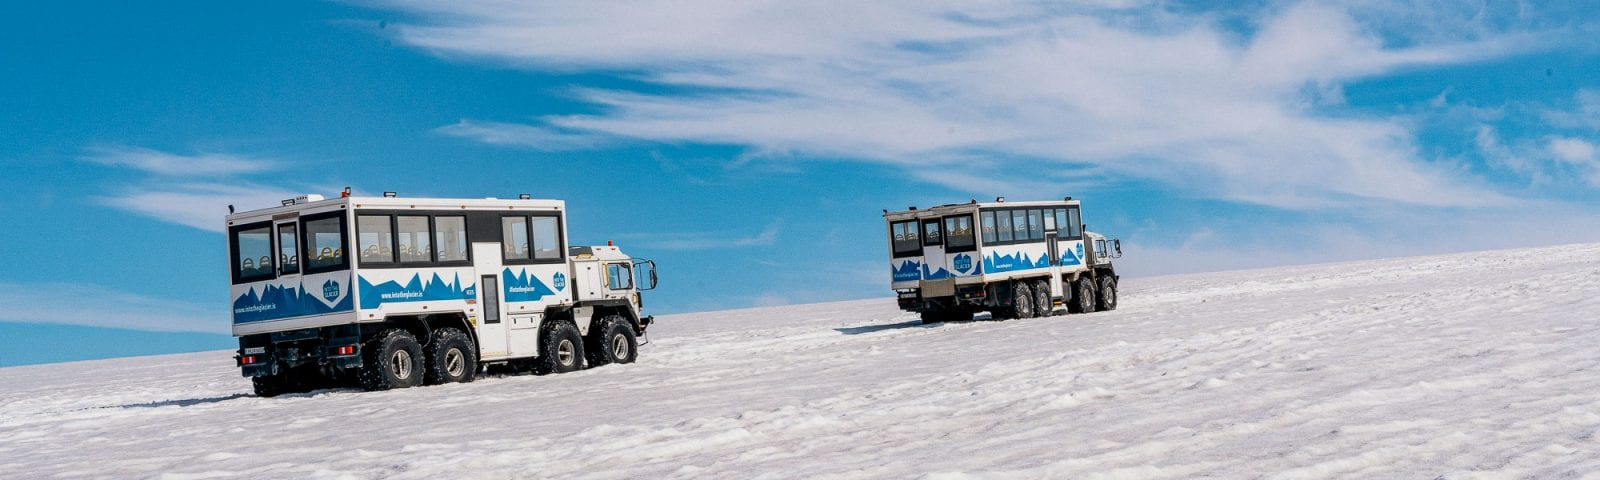 8 wheel trucks - into the glacier